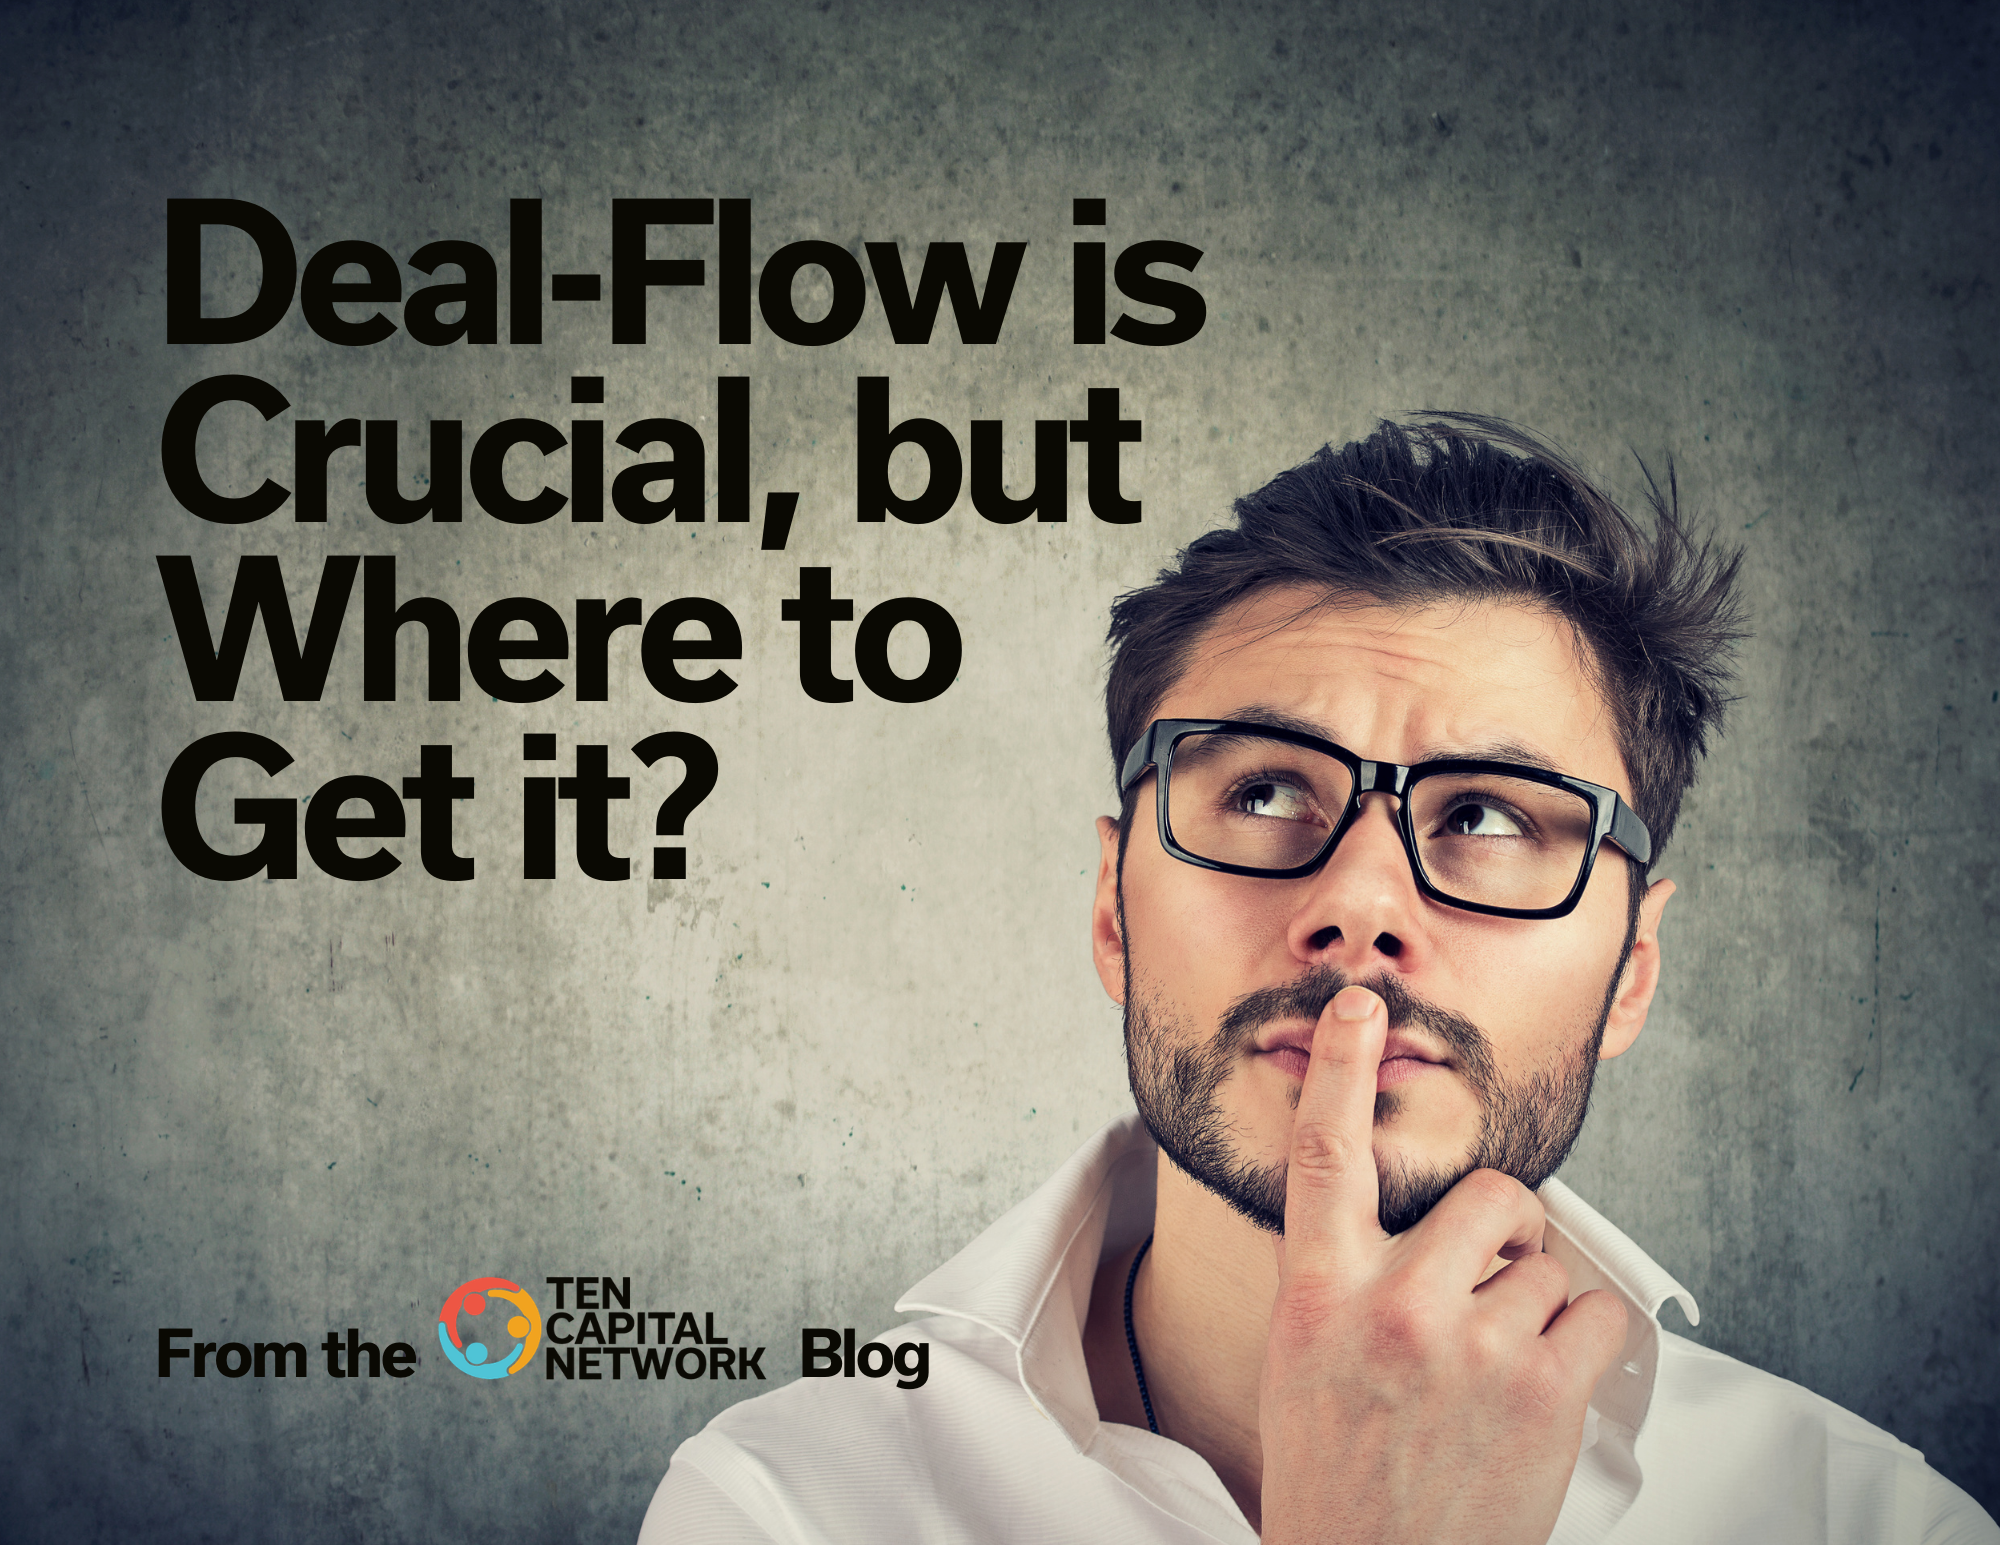 Deal-Flow is Crucial